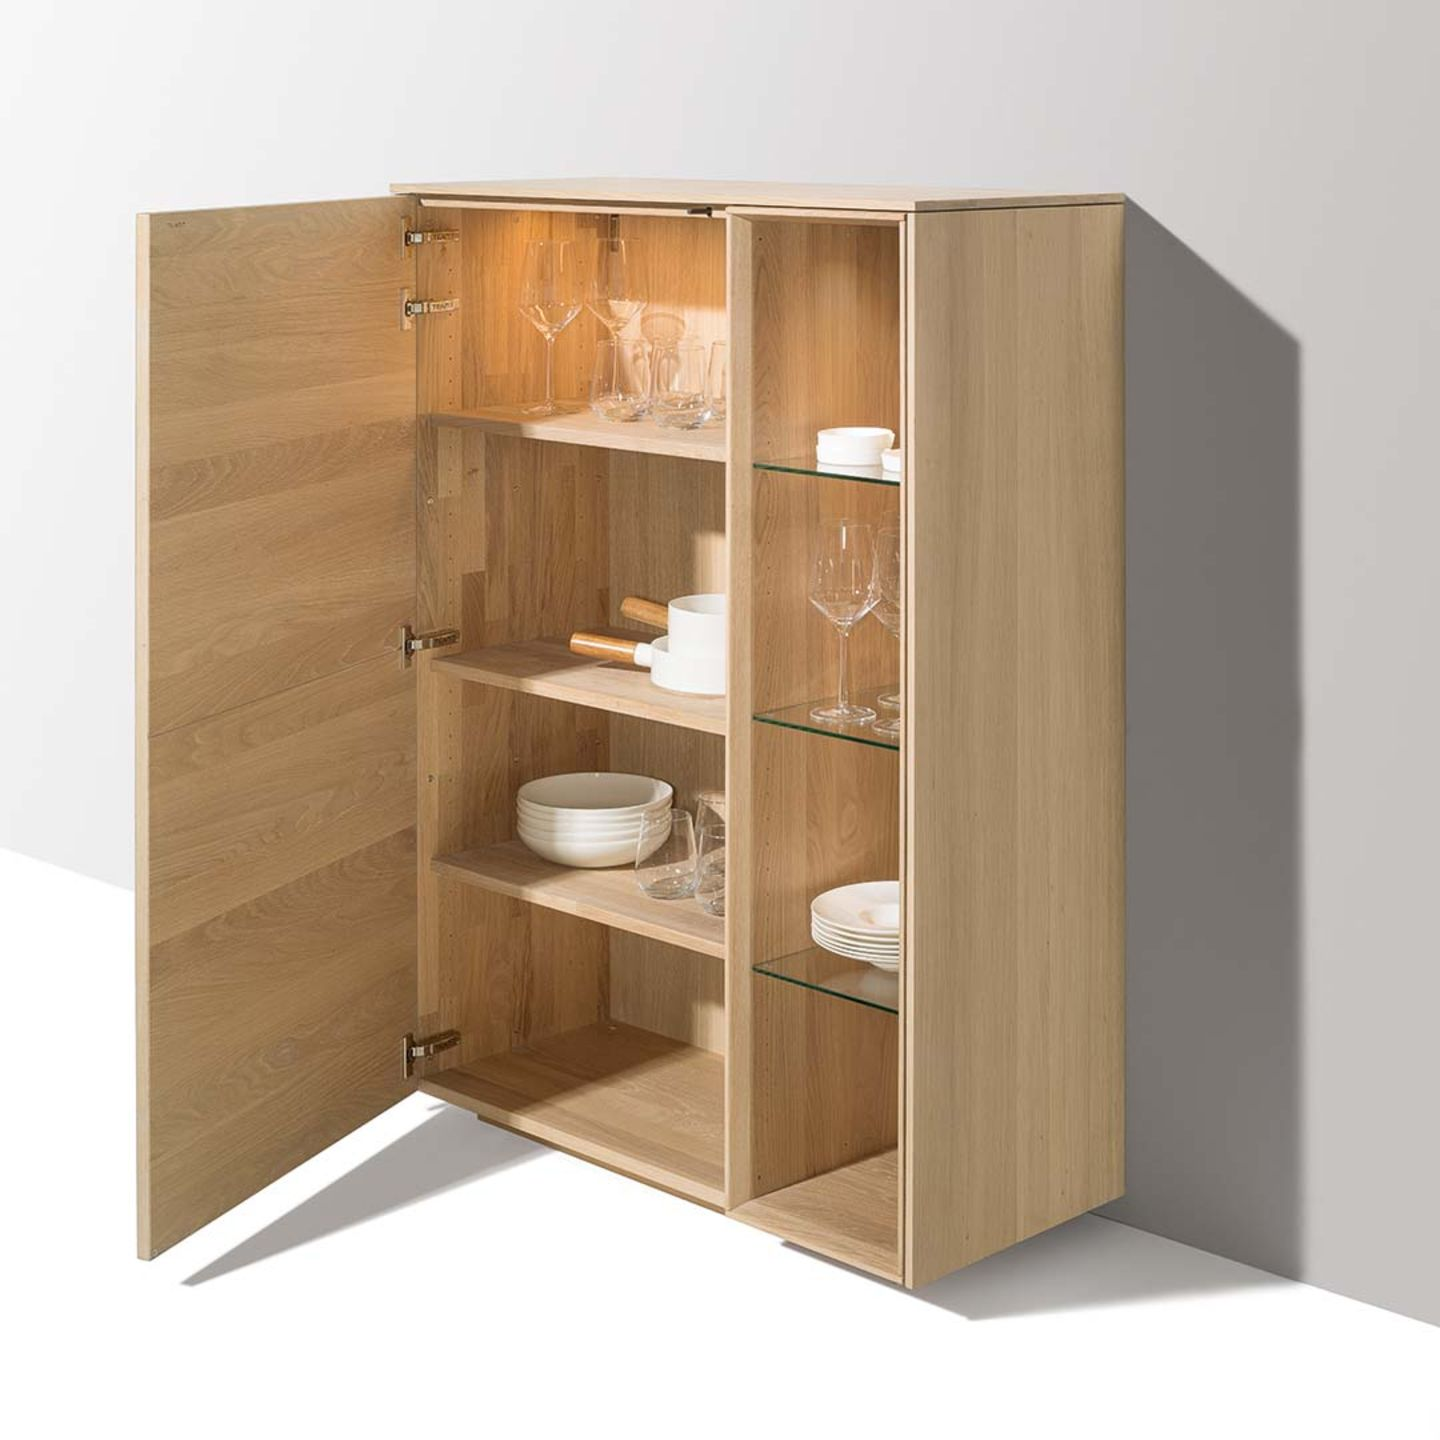 Highboard filigno con anta aperta e suddivisione interna